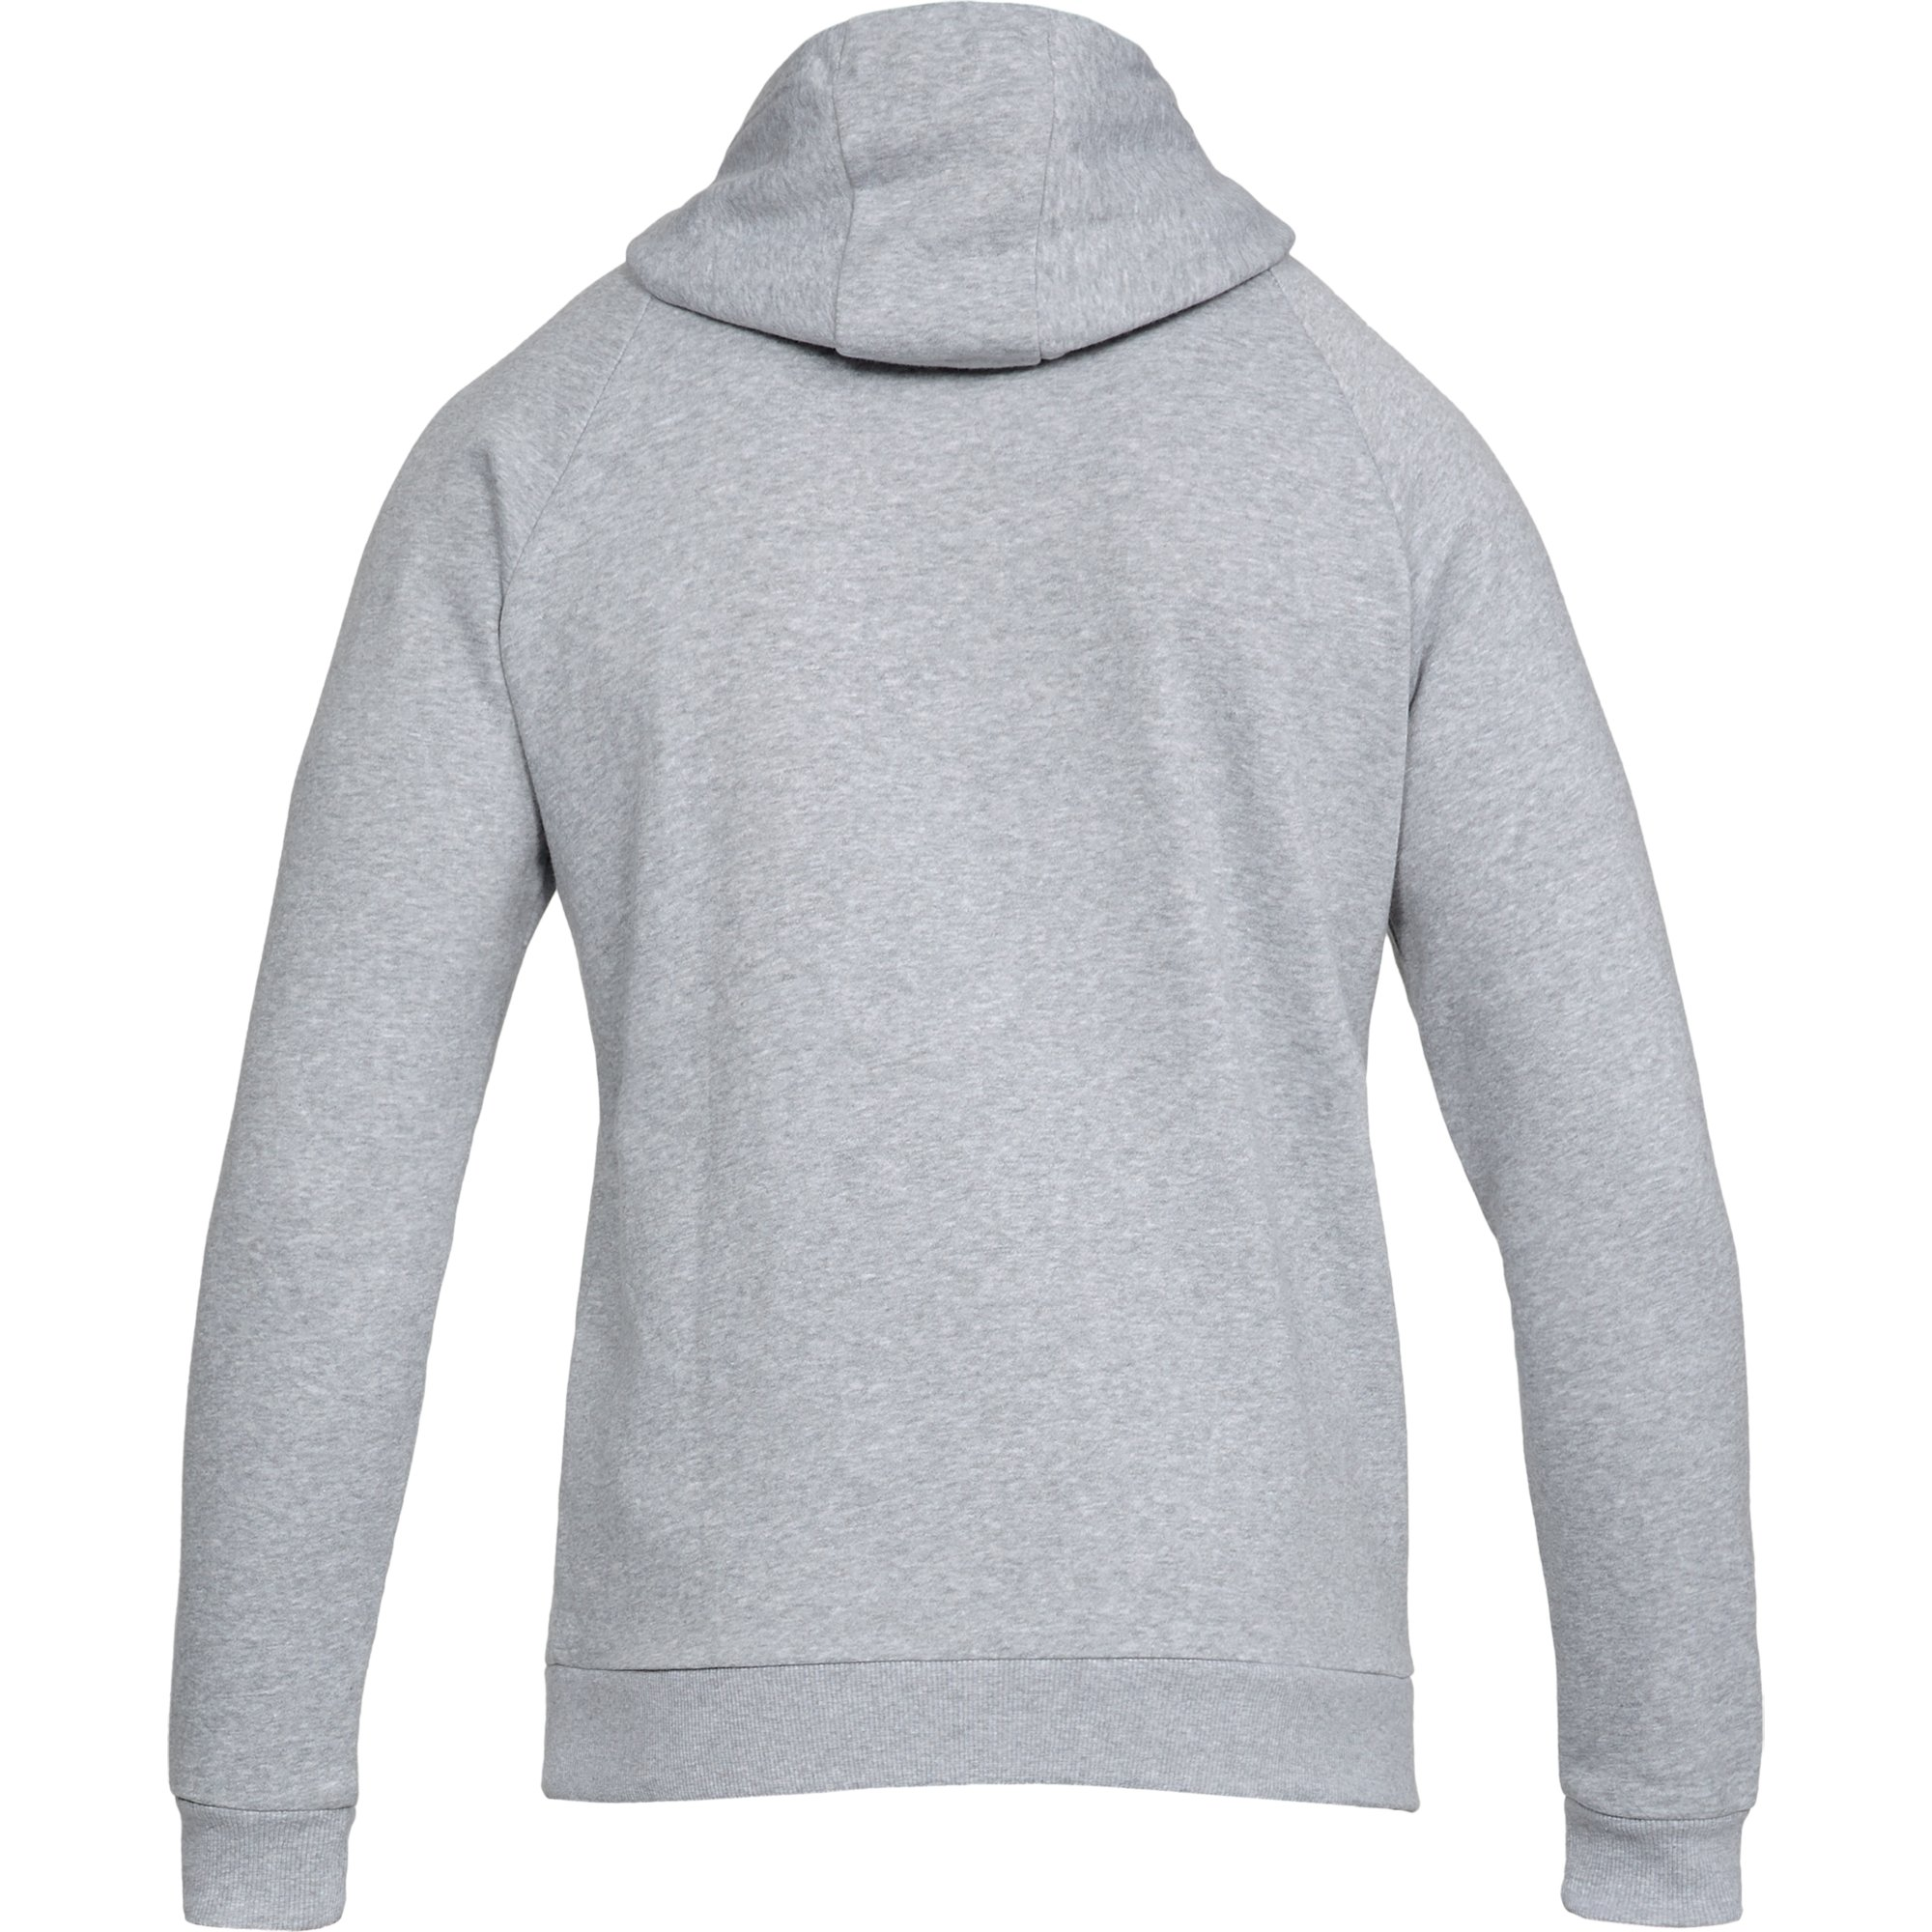 Under Armour Rival Fleece Hoody 1320737-036_HB